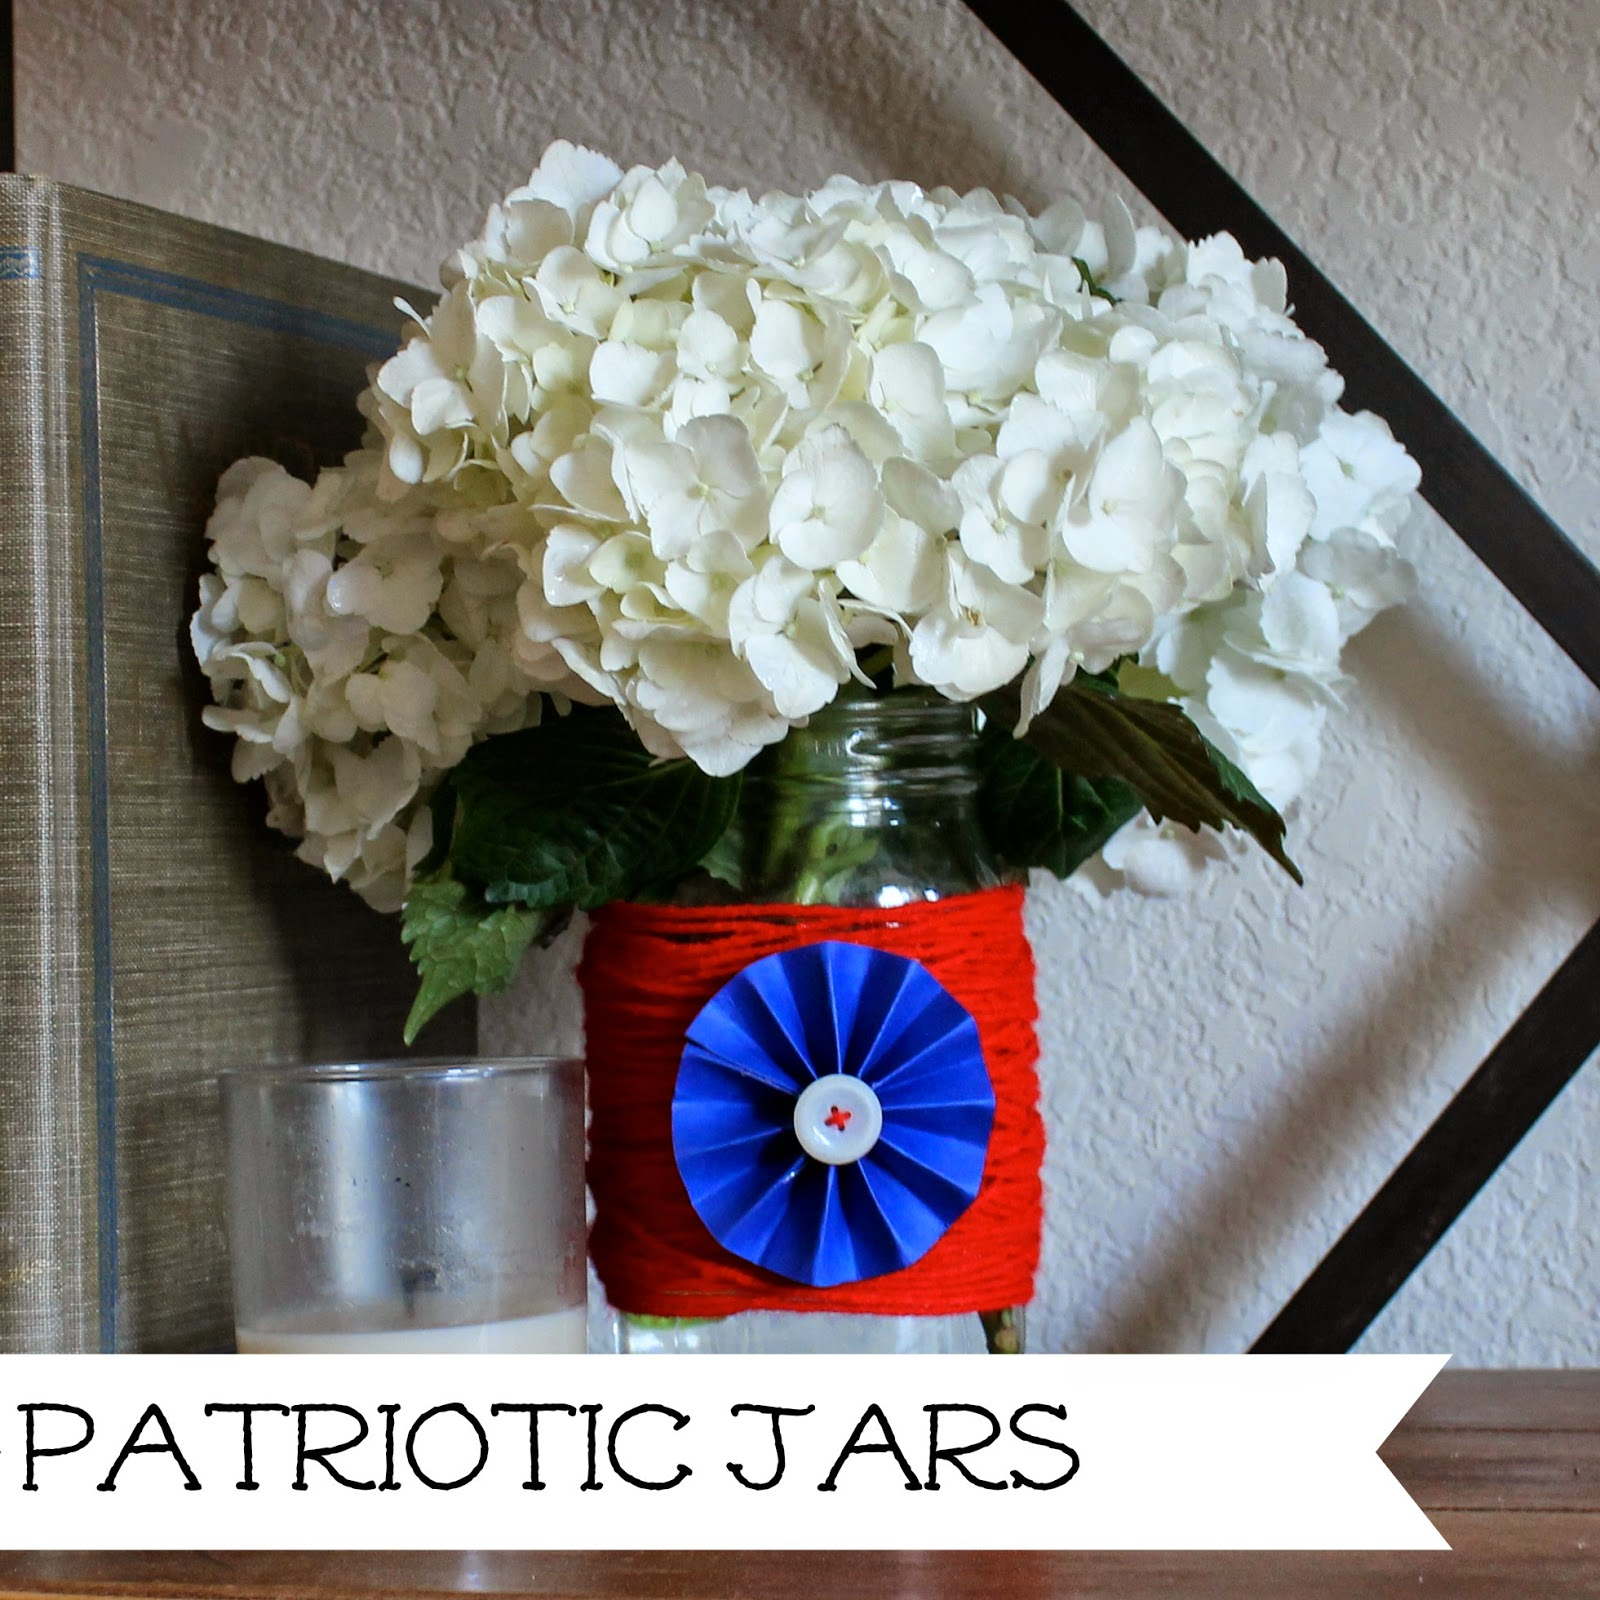 http://wonderfullymadebyleslie.blogspot.com/2014/05/patriotic-jar-decor.html